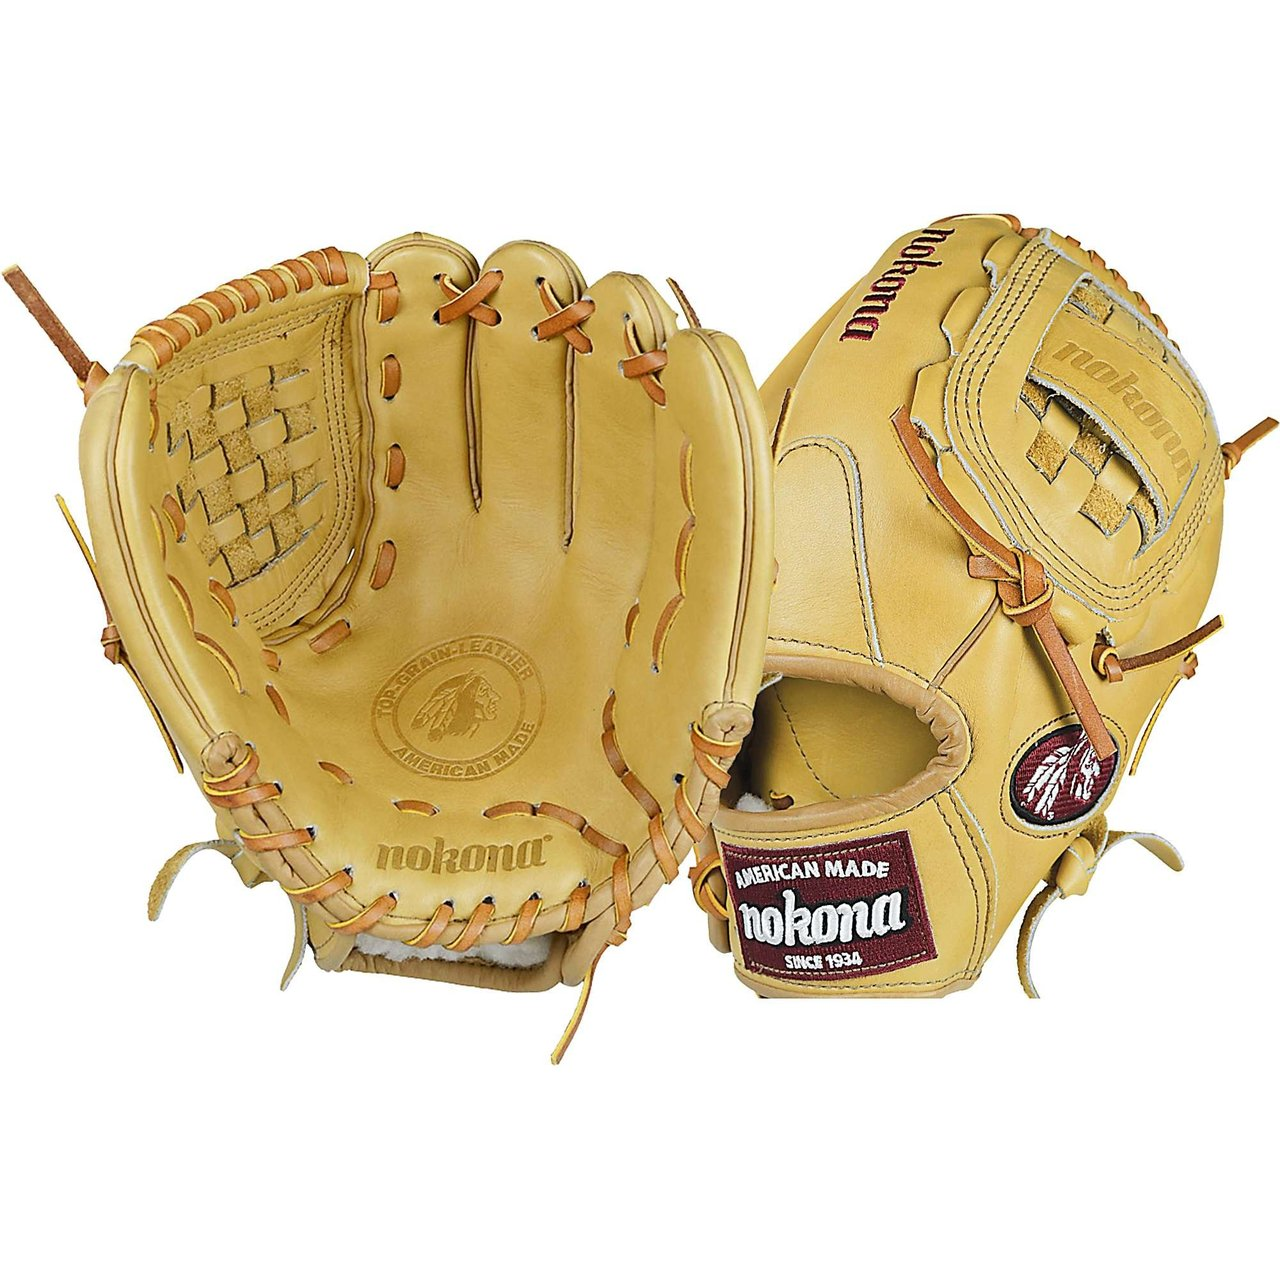 Nokona 12 inch American Legend Baseball Glove (Right Handed Throw) : A full Nokona Sandstone glove. The American Legend is a stiff, sturdy, durable glove which is a traditional Nokona. This glove is for the player looking for structure and durability, and allows for more custom break-in. Form it to your preference. The American Legend will maintain its shape over a long period of time, and provides exceptional durability. The glove has a modified trap web and open conventional back. Ideal for pitching or just playing catch.